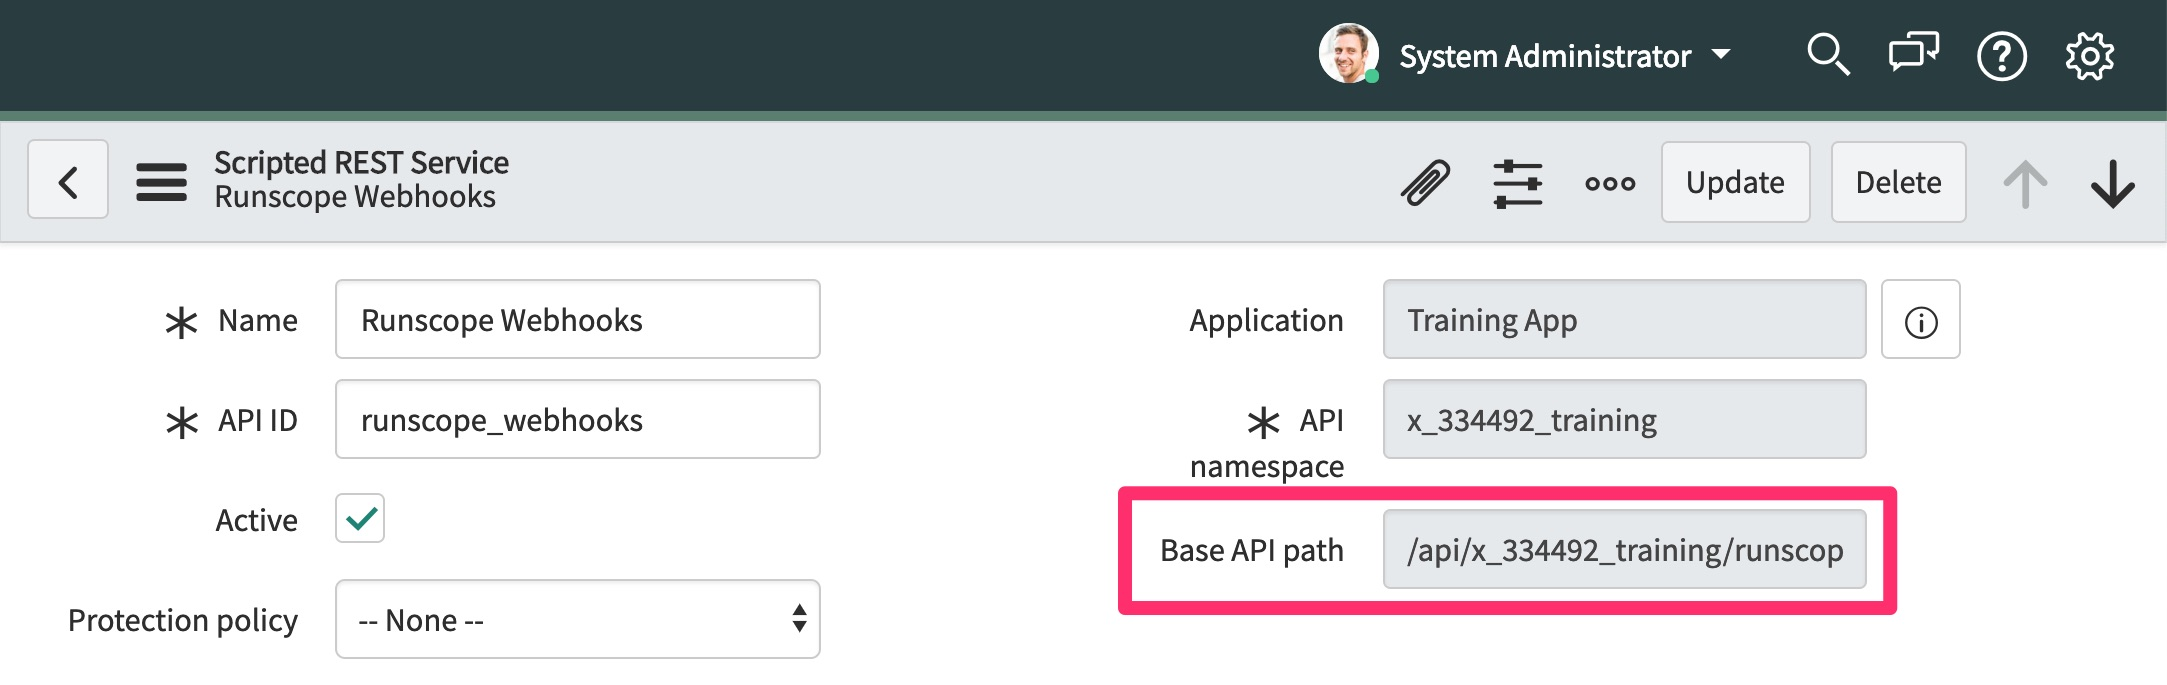 The ServiceNow REST API details page for our newly created API, highlighting the Base API Path field that needs to be copied for the next steps